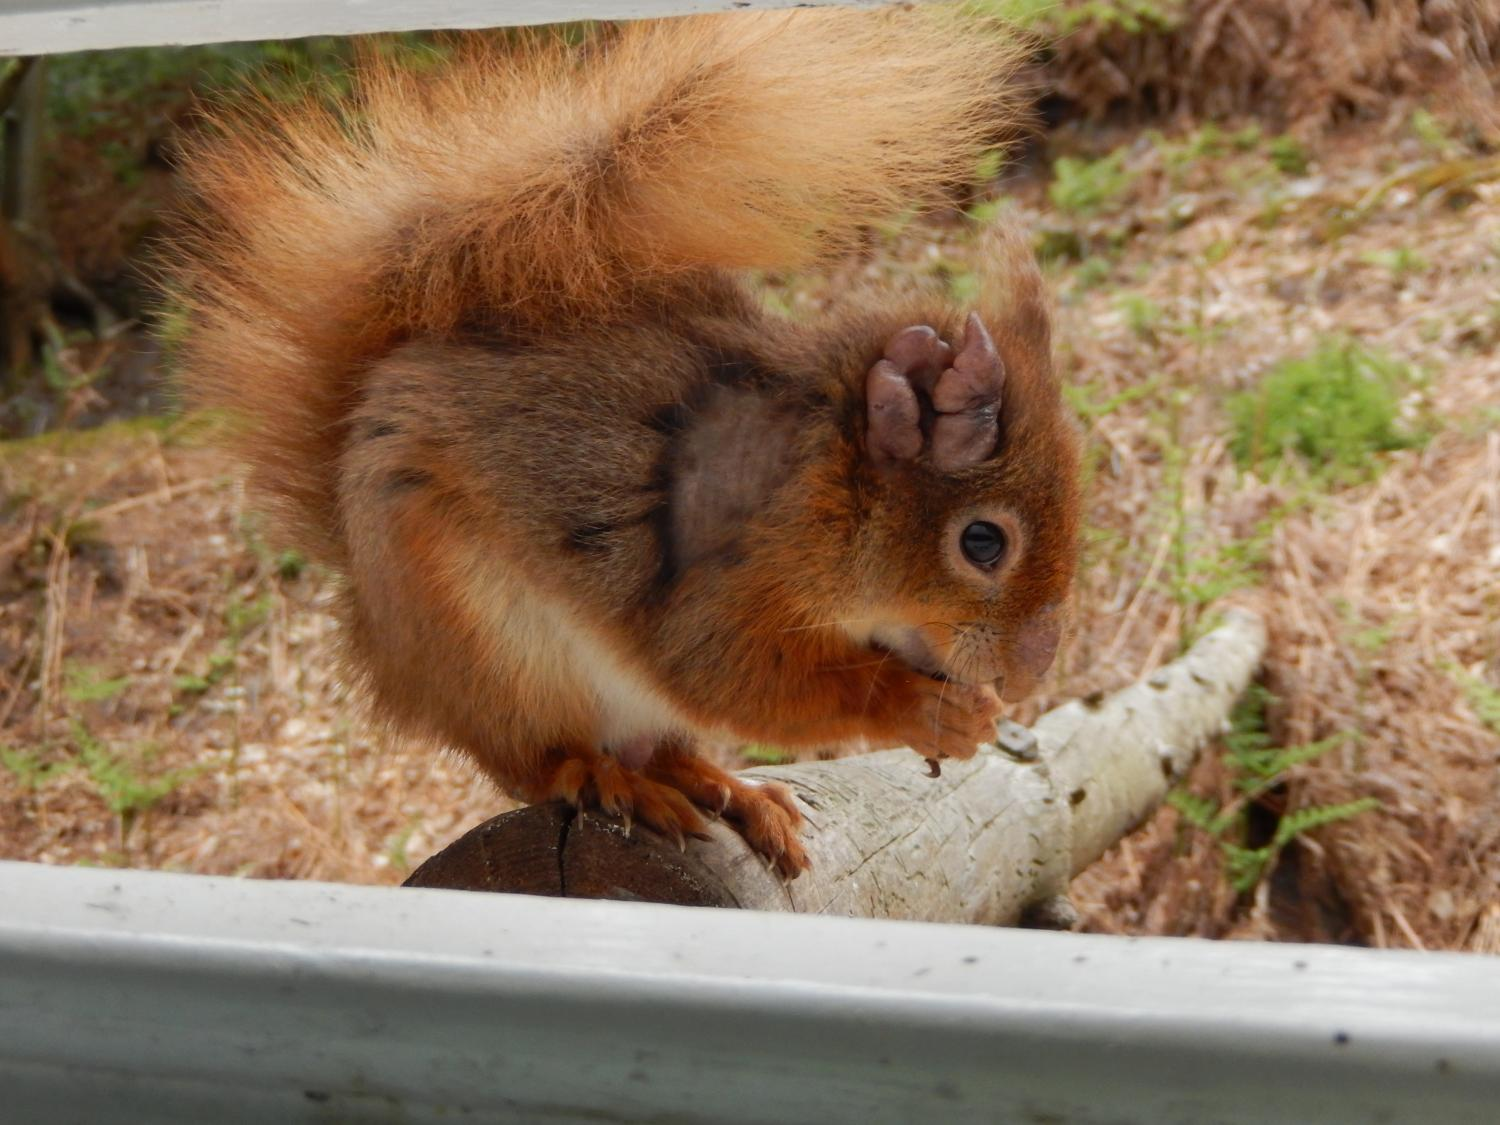 Red squirrels in the British Isles are infected with leprosy bacteria